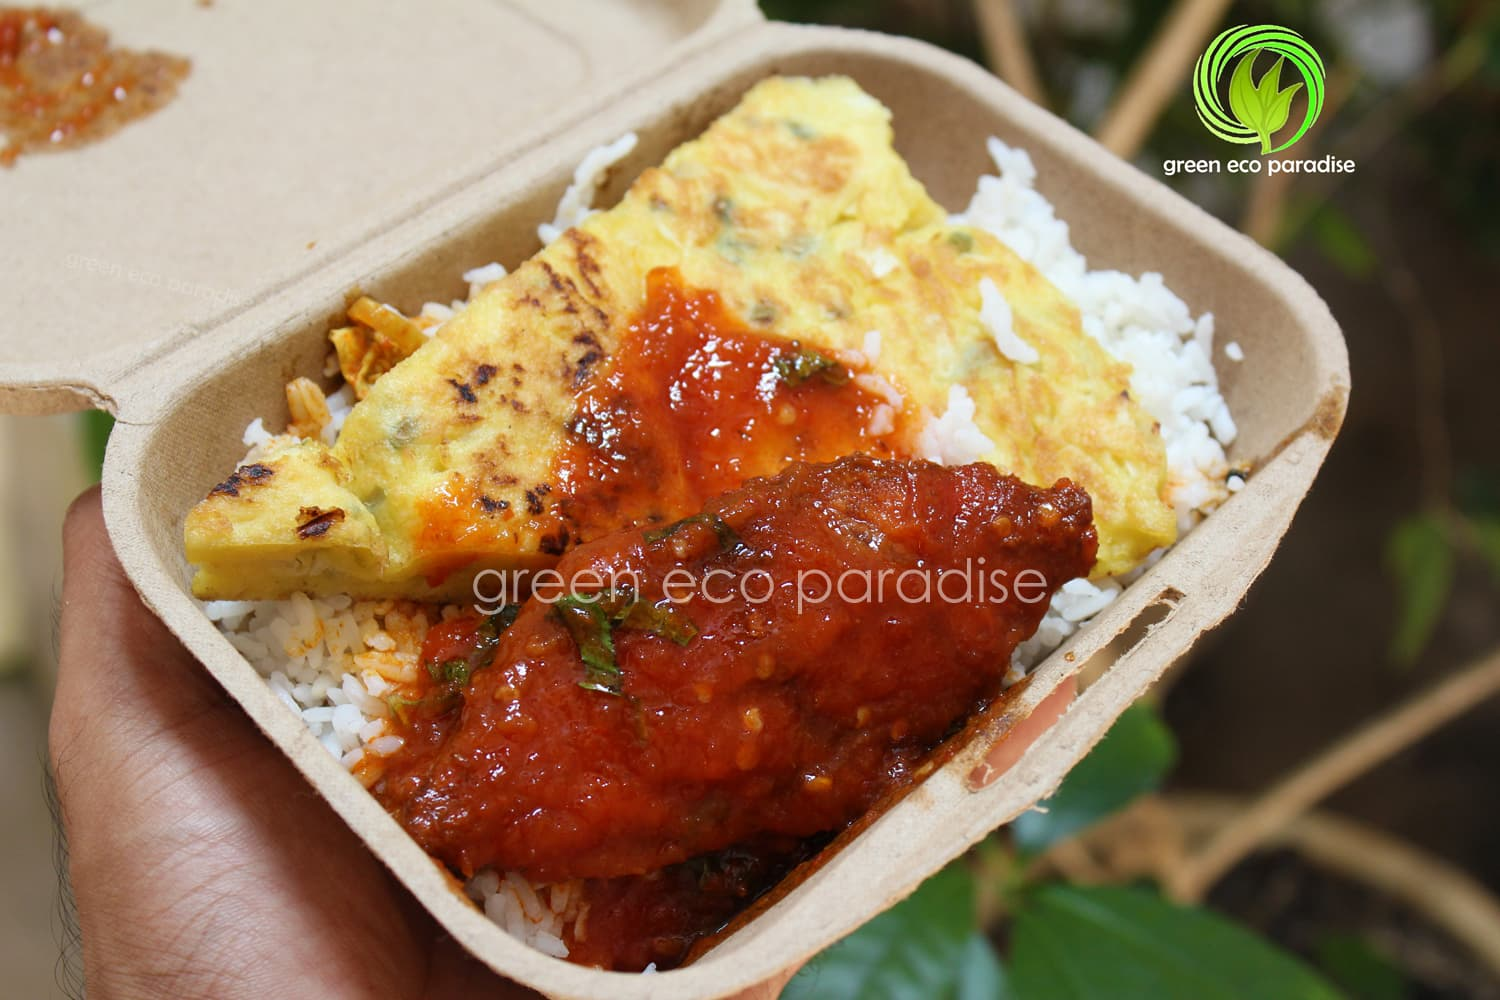 Takeaway with biodegradable food packaging box